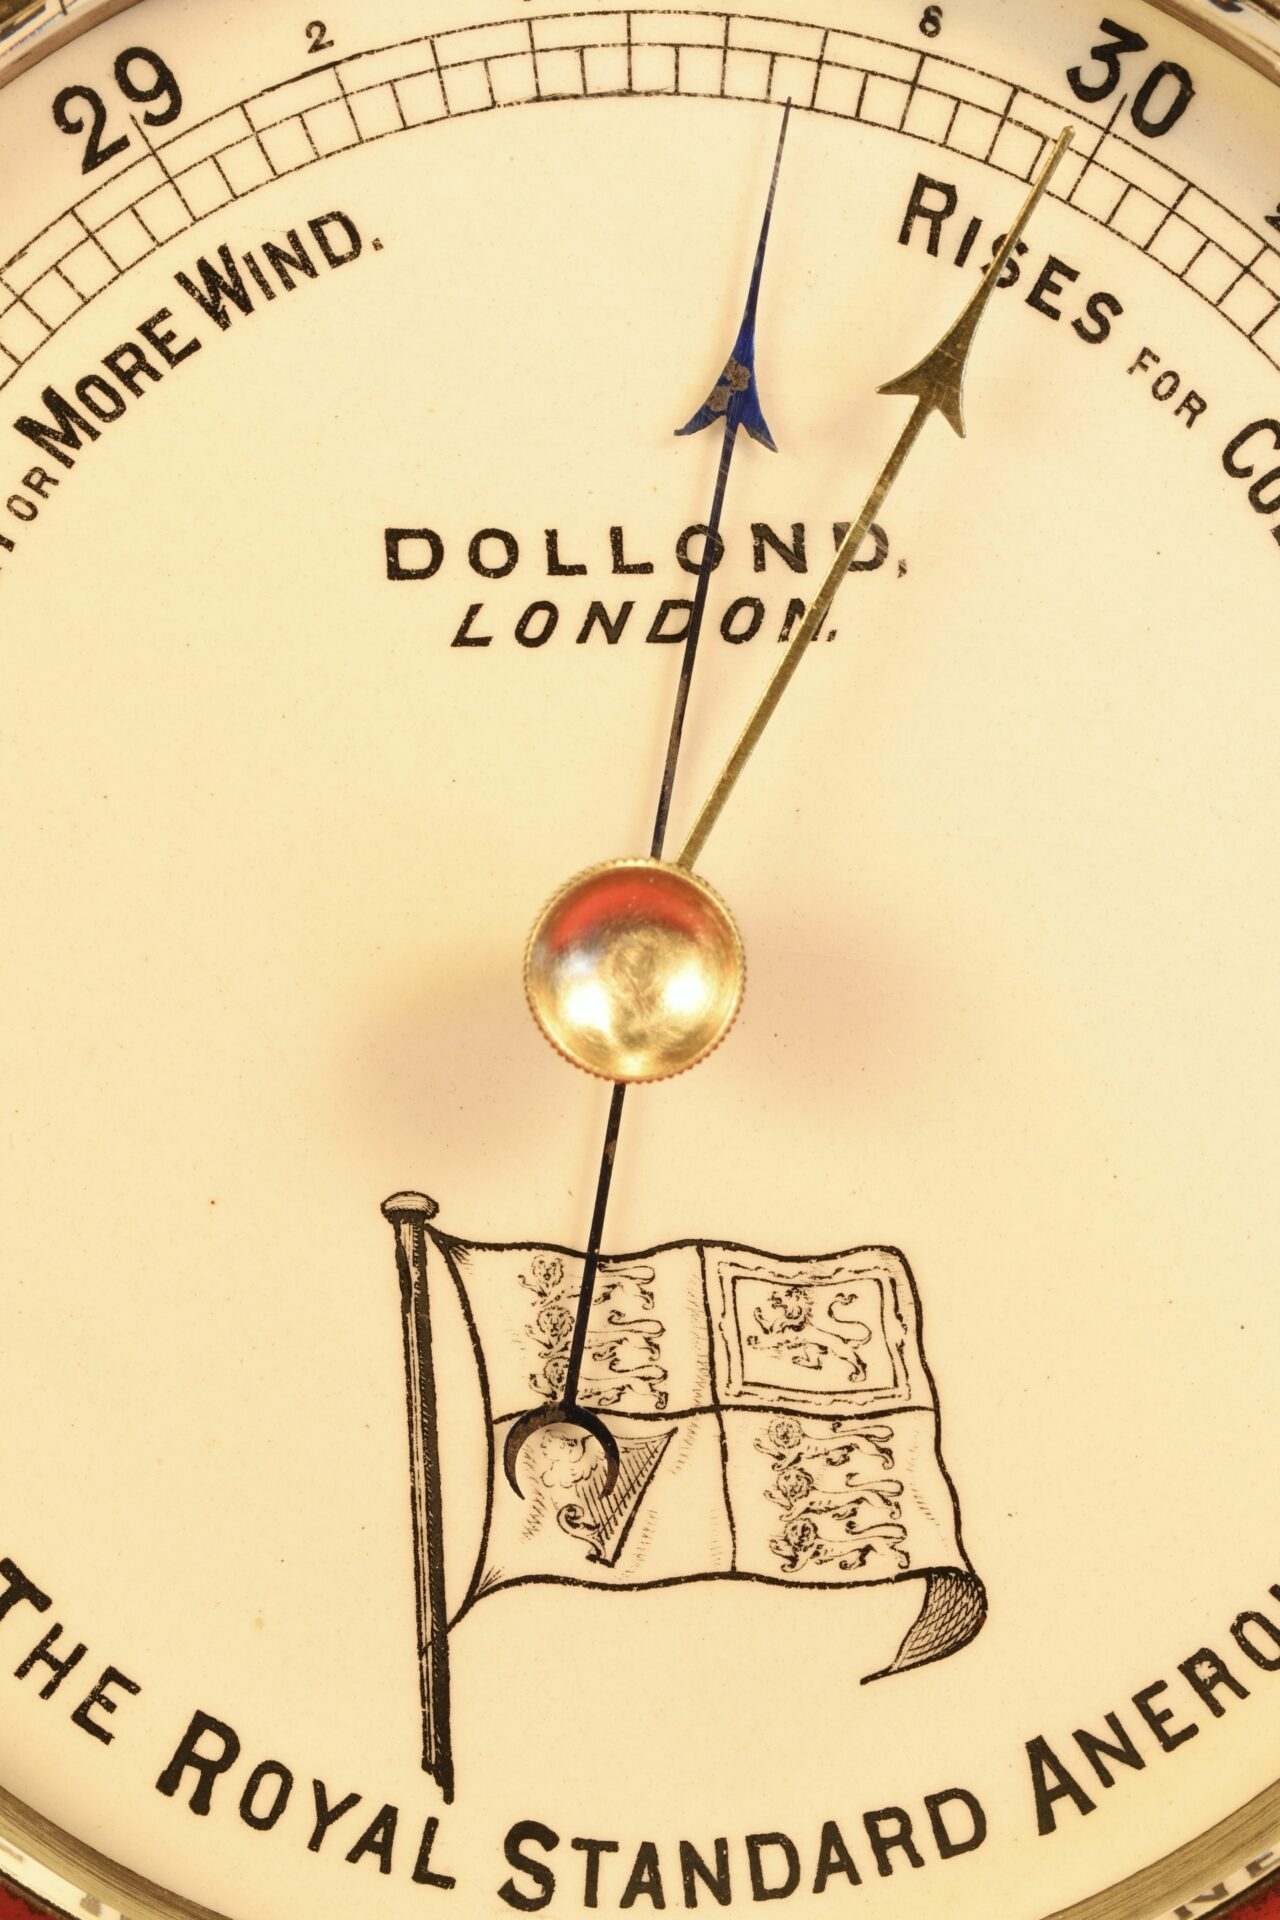 Close up of dial of Dollond Royal Standard Marine Barometer c1880